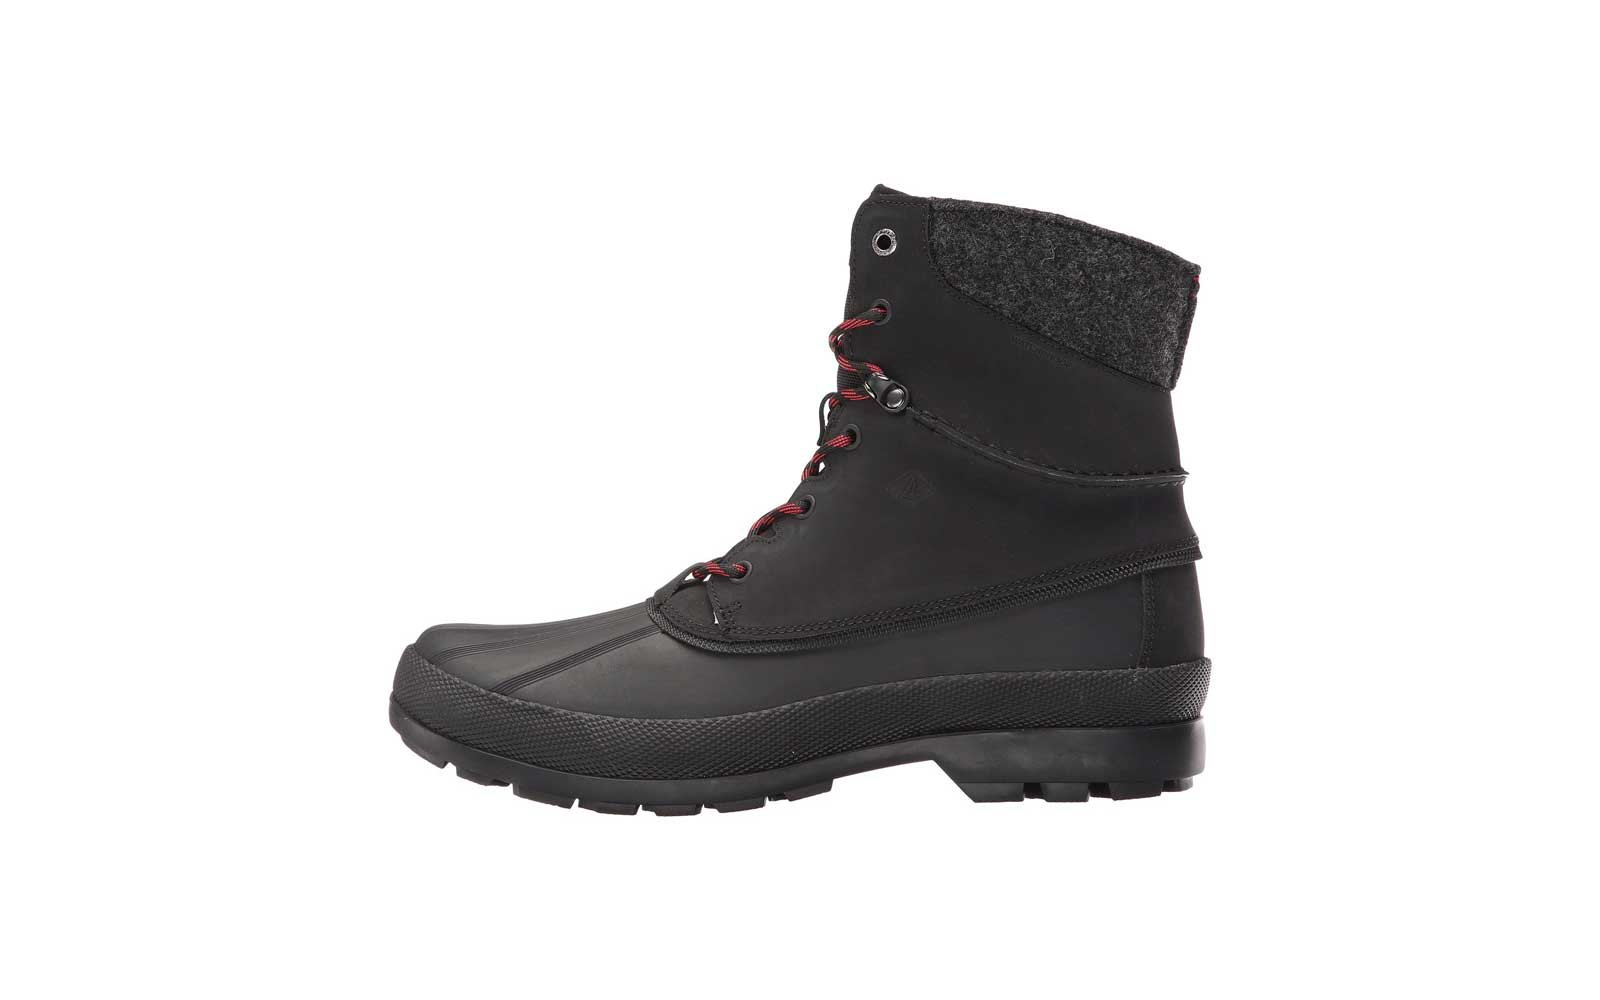 Top 18 Best Snow Boots For Men – Warm Waterproof Style To Stay Dry pics